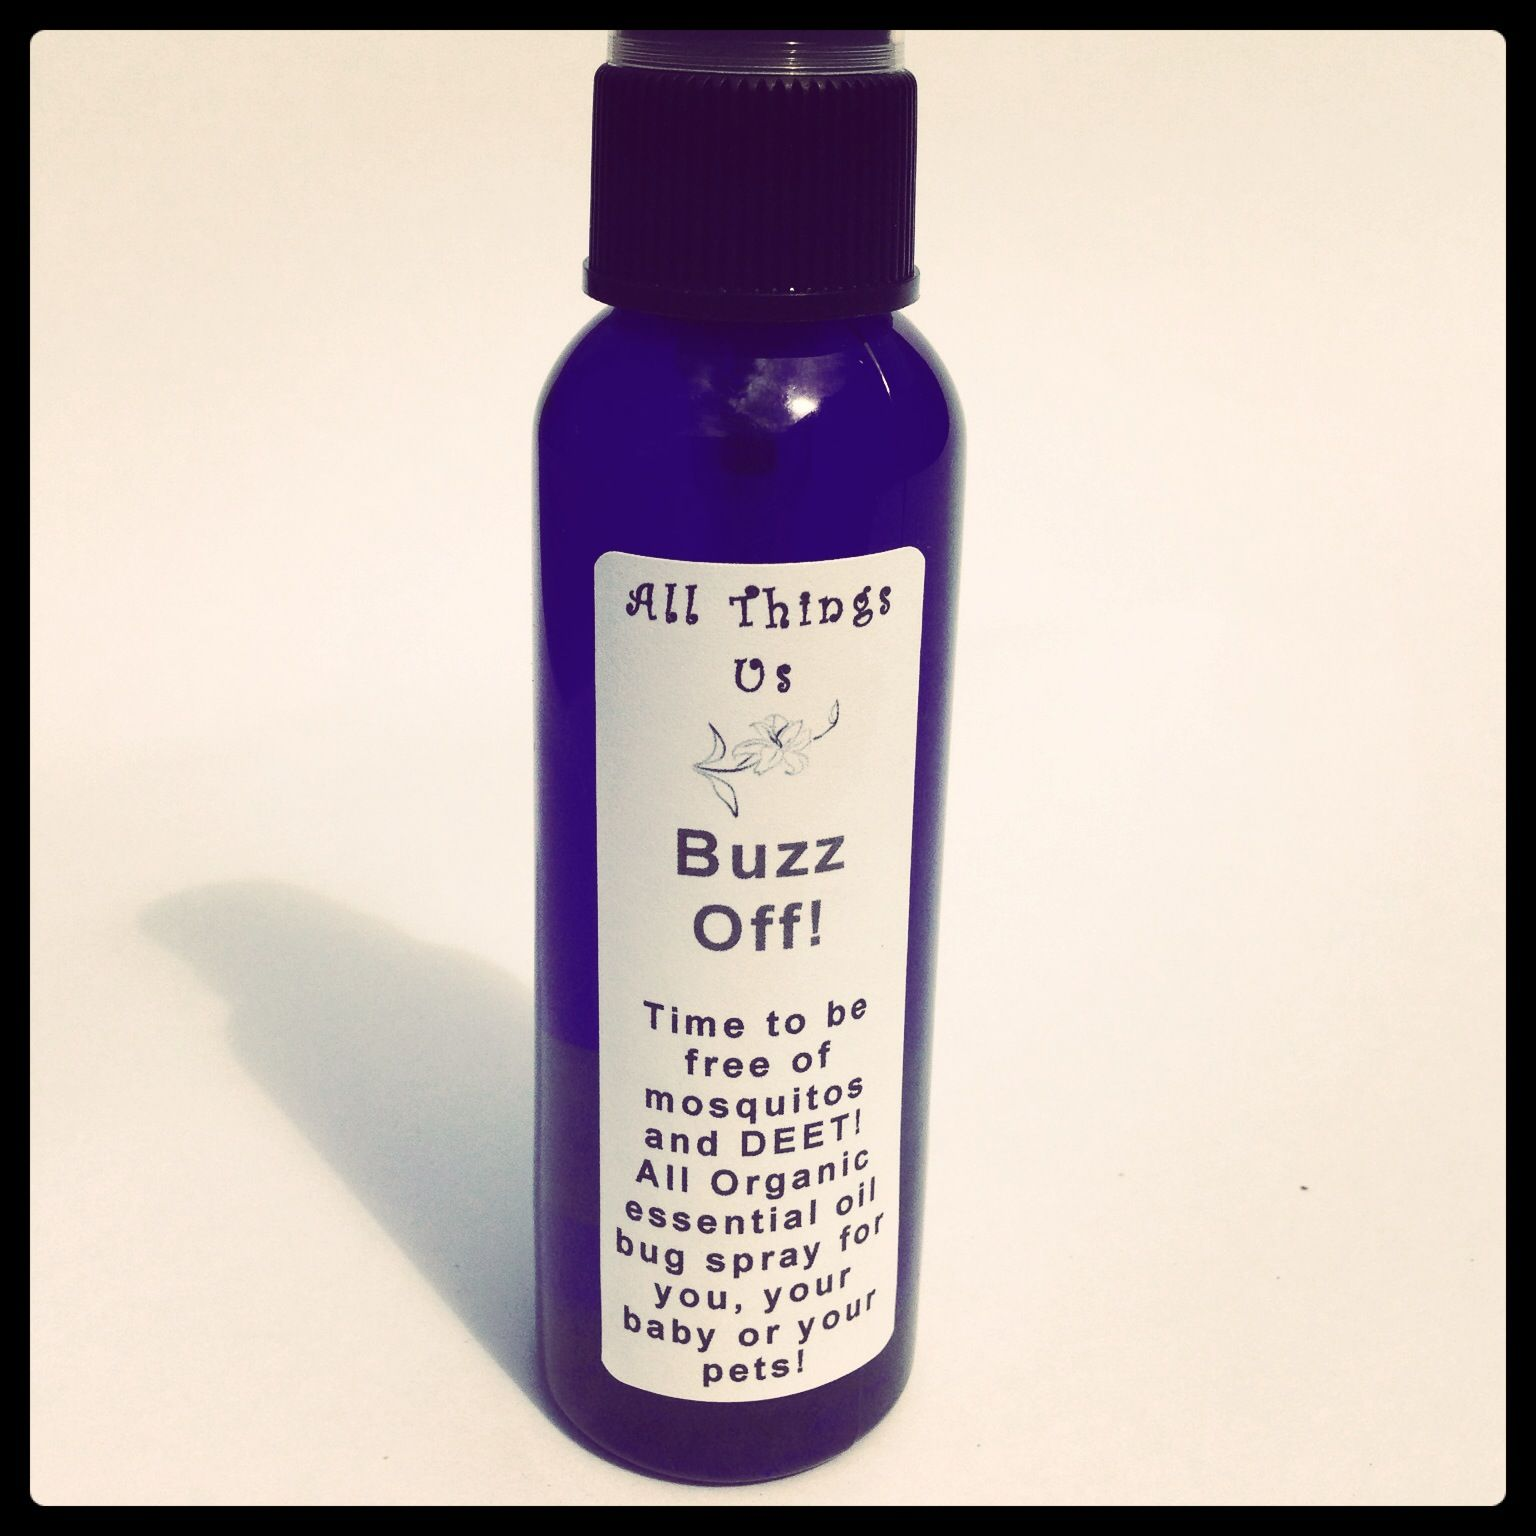 Buzz Off! Mosquito & Bug Repellant Organic Essential Oil Blend All Natural I've tried this it works great and smells awesome! Definitely my choice now im stocked up with it lol